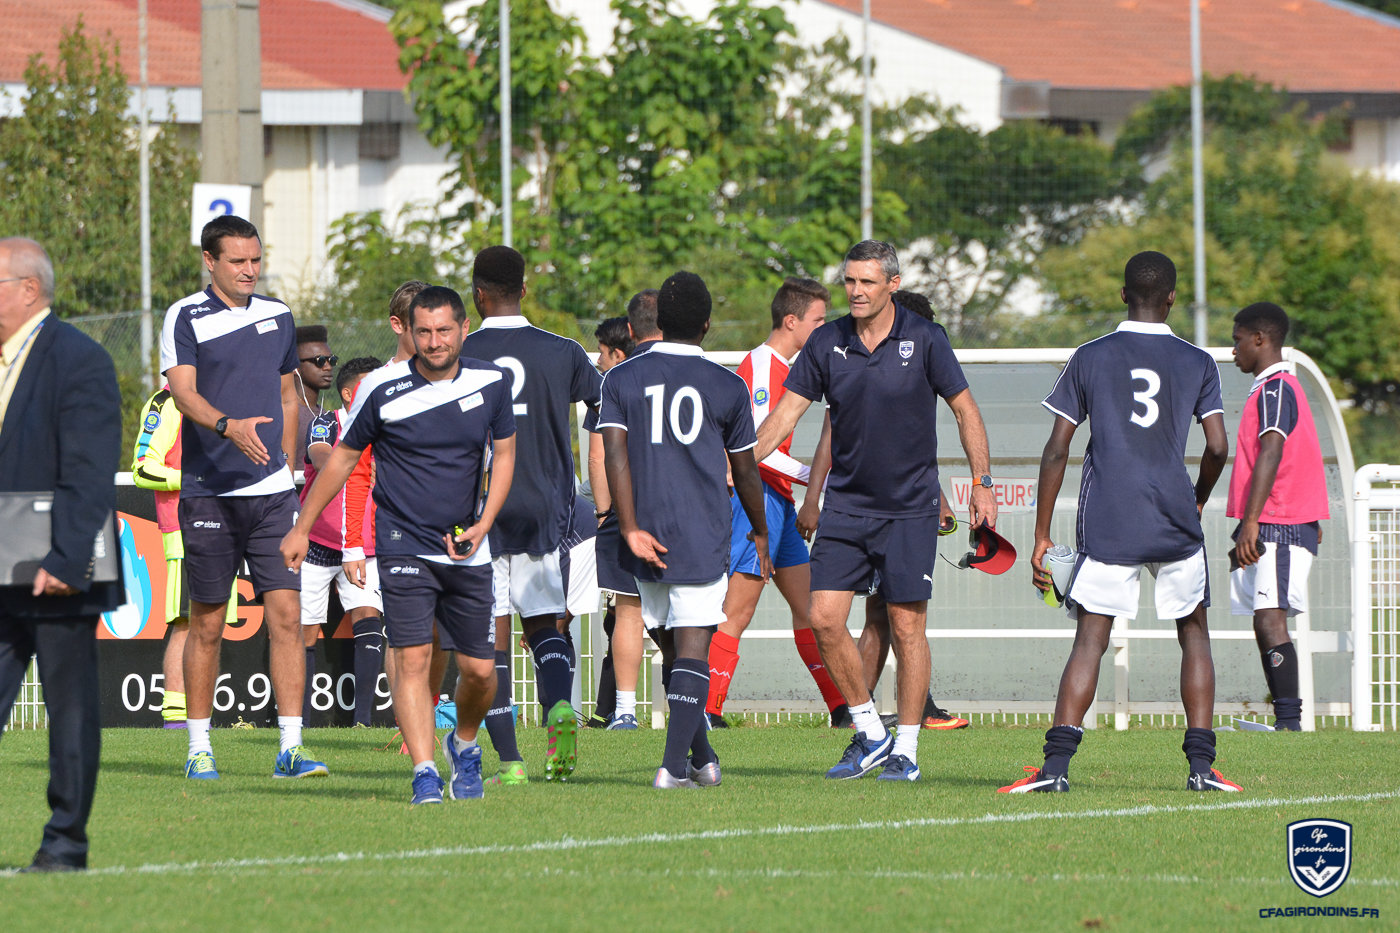 Cfa Girondins : Pas de phases finales pour les U17 Nationaux - Formation Girondins